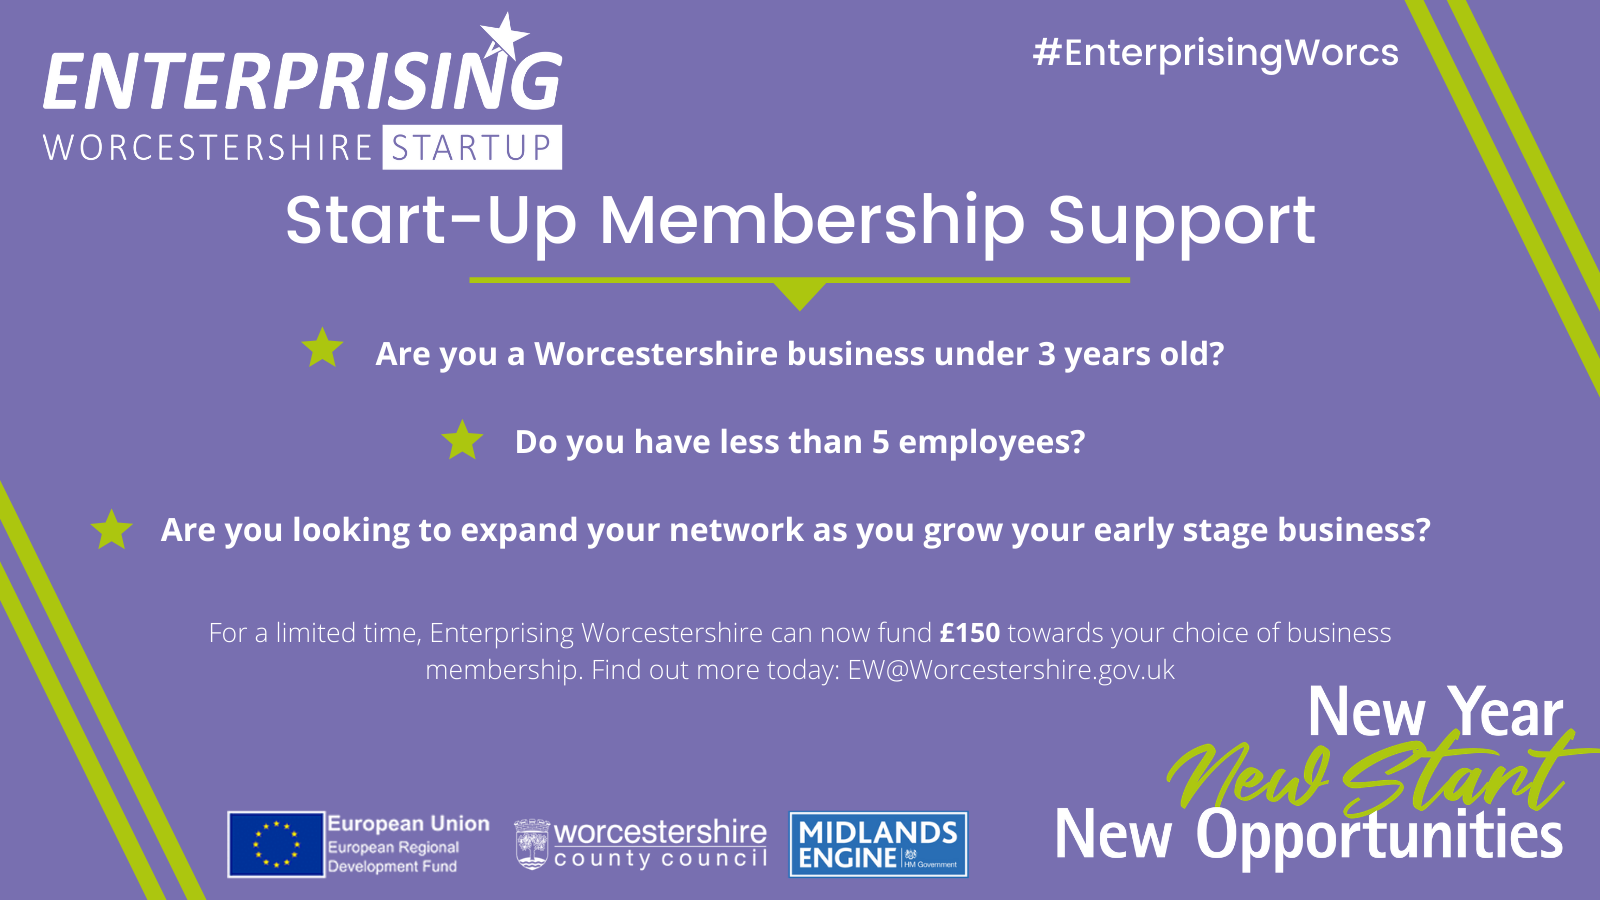 Poster advertising start-up membership support.